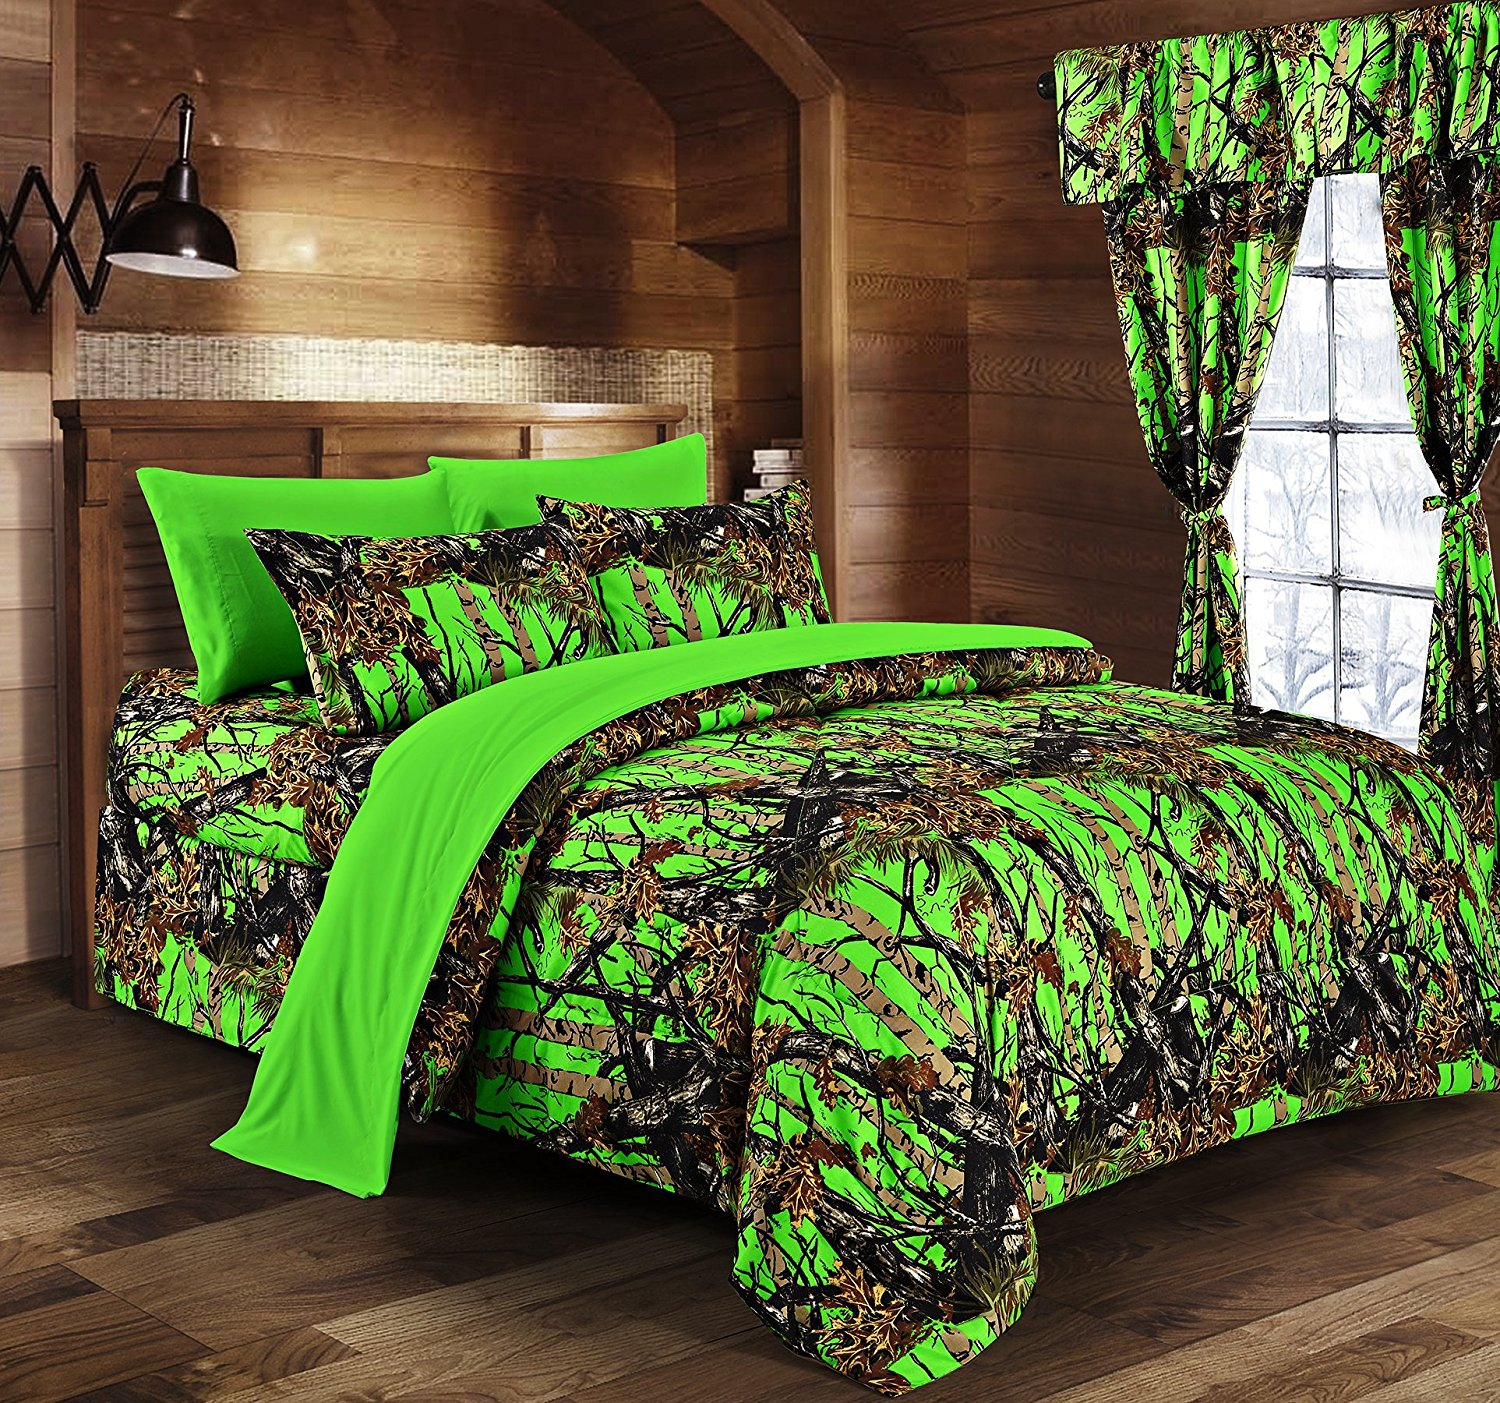 Regal Comfort - BioHazard Green Camouflage Twin 5pc Premium Luxury Comforter, Sheet, Pillowcases, and Bed Skirt Set by Camo Bedding Set For Hunters Teens Boys and Girls